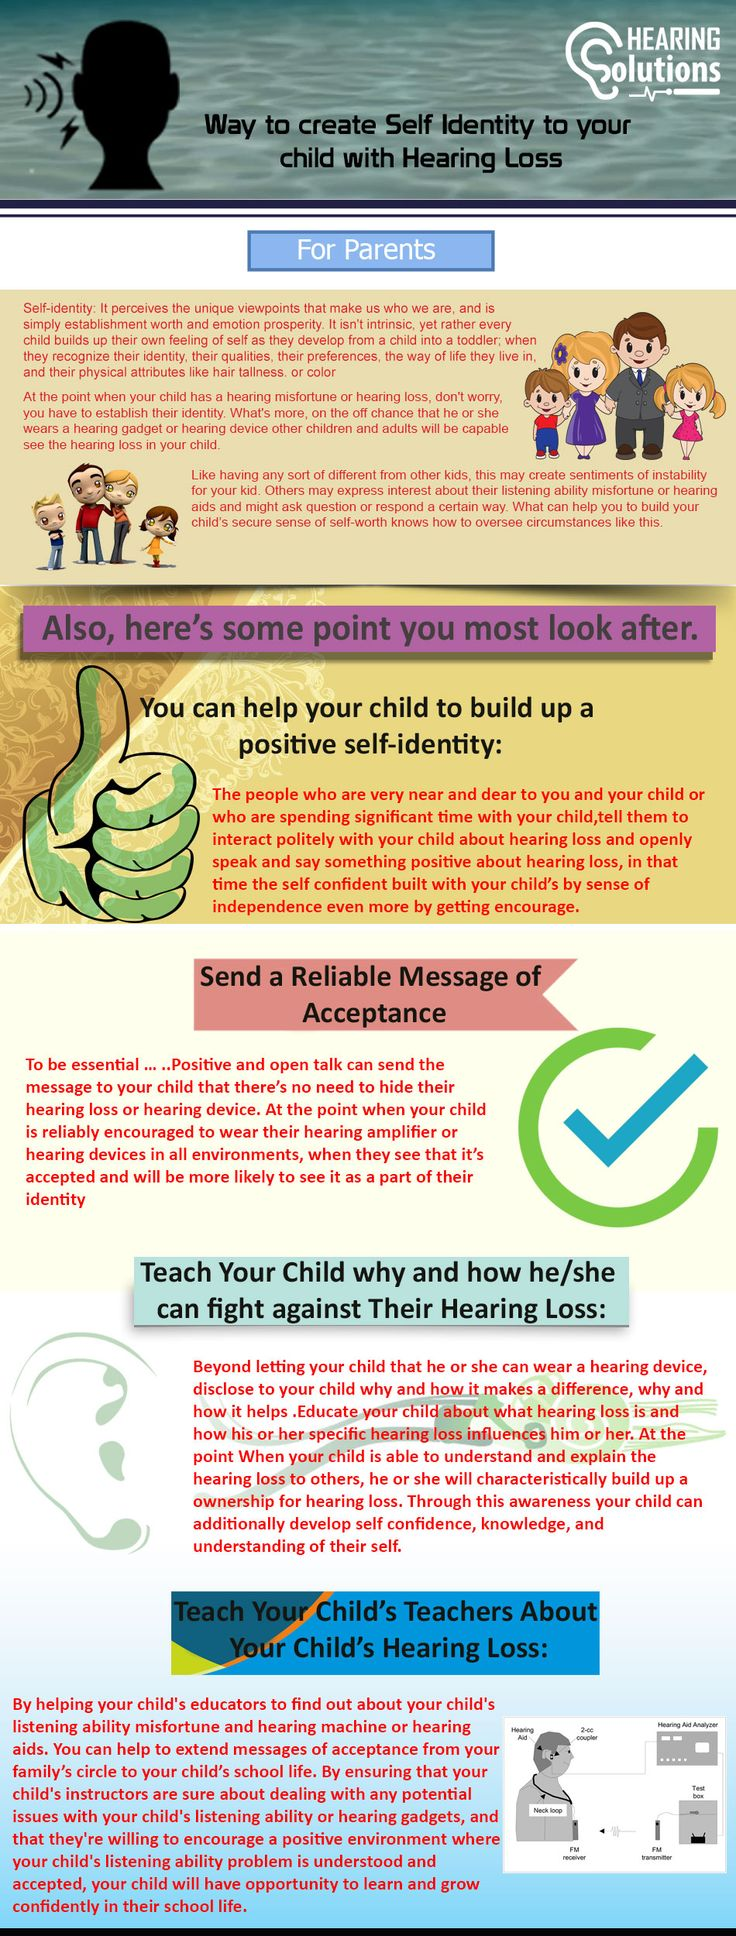 If your child has the hearing probelm so first problems is that how we can identify that our child has the hearing problem. You should have to tell your child that don't have problem with hearing loss and always think positively. You need to try to understand your child, hearing loss is not a big problem. For more visit :- https://www.hearingsol.com/infographics/help-child-develop-personal-identity-hearing-loss/